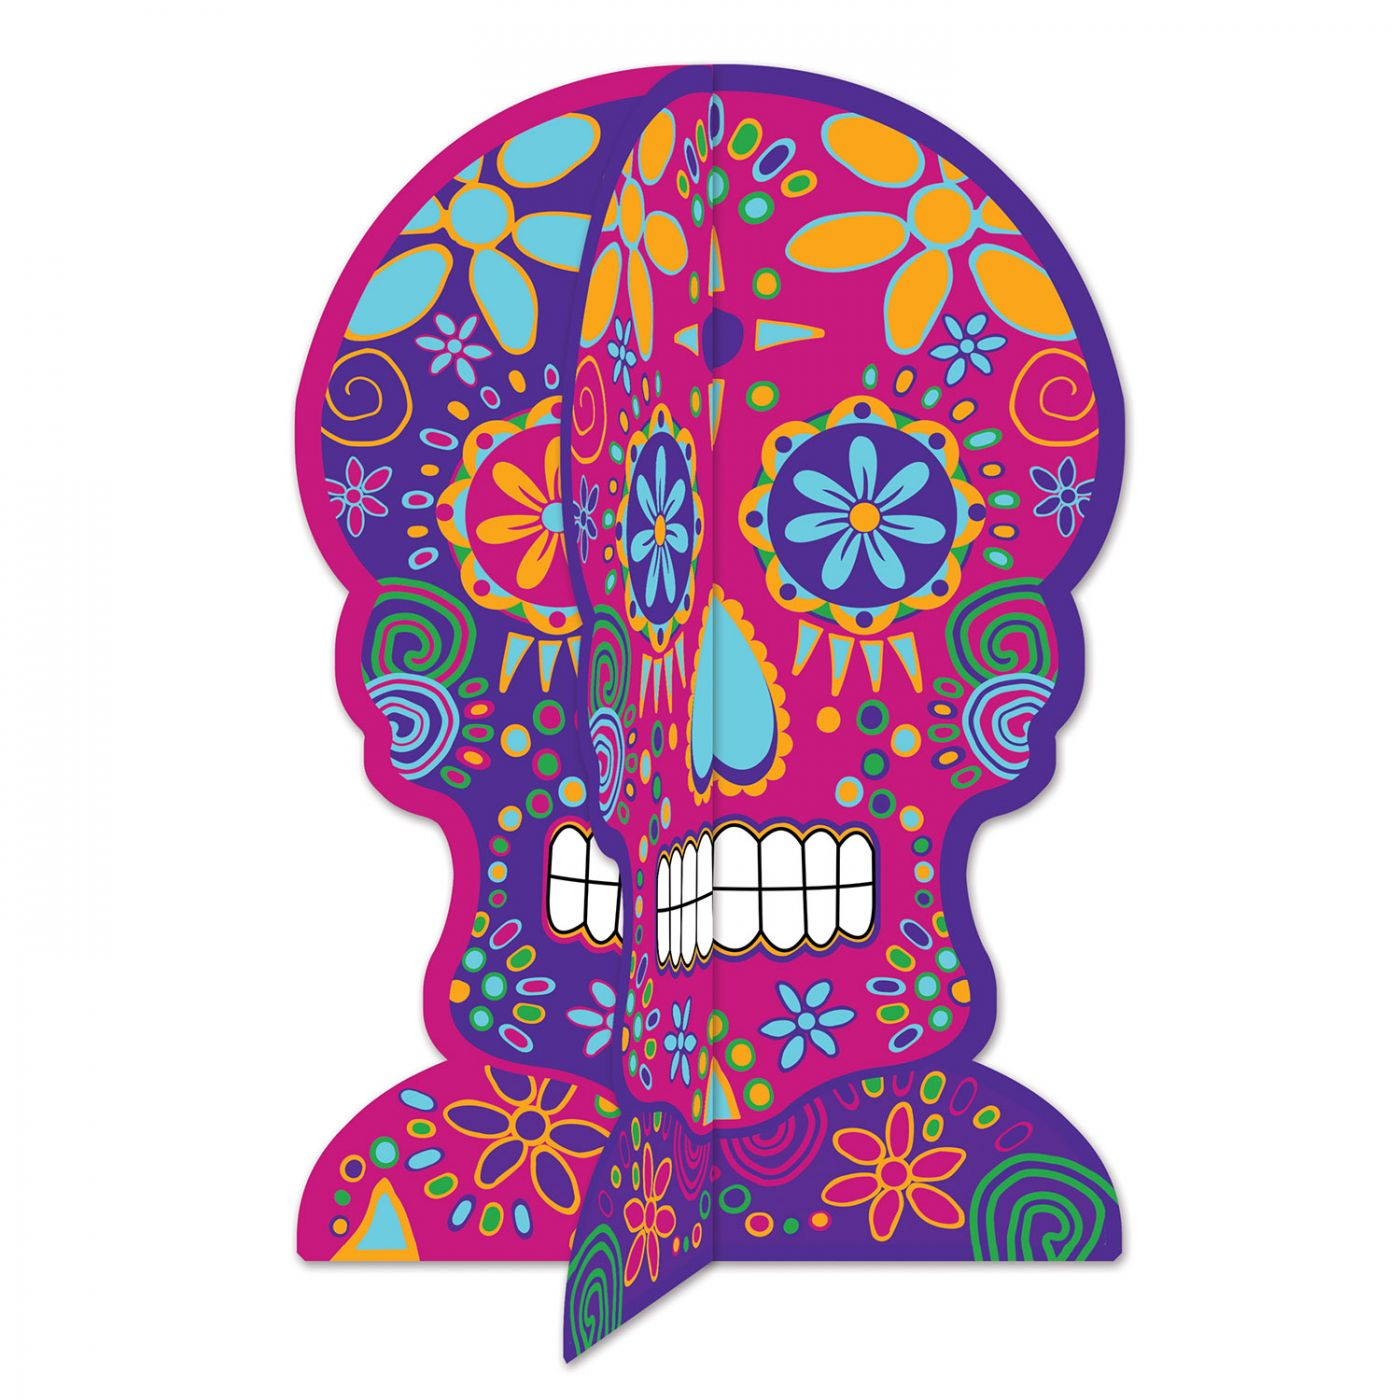 3-D Day Of The Dead Centerpiece image